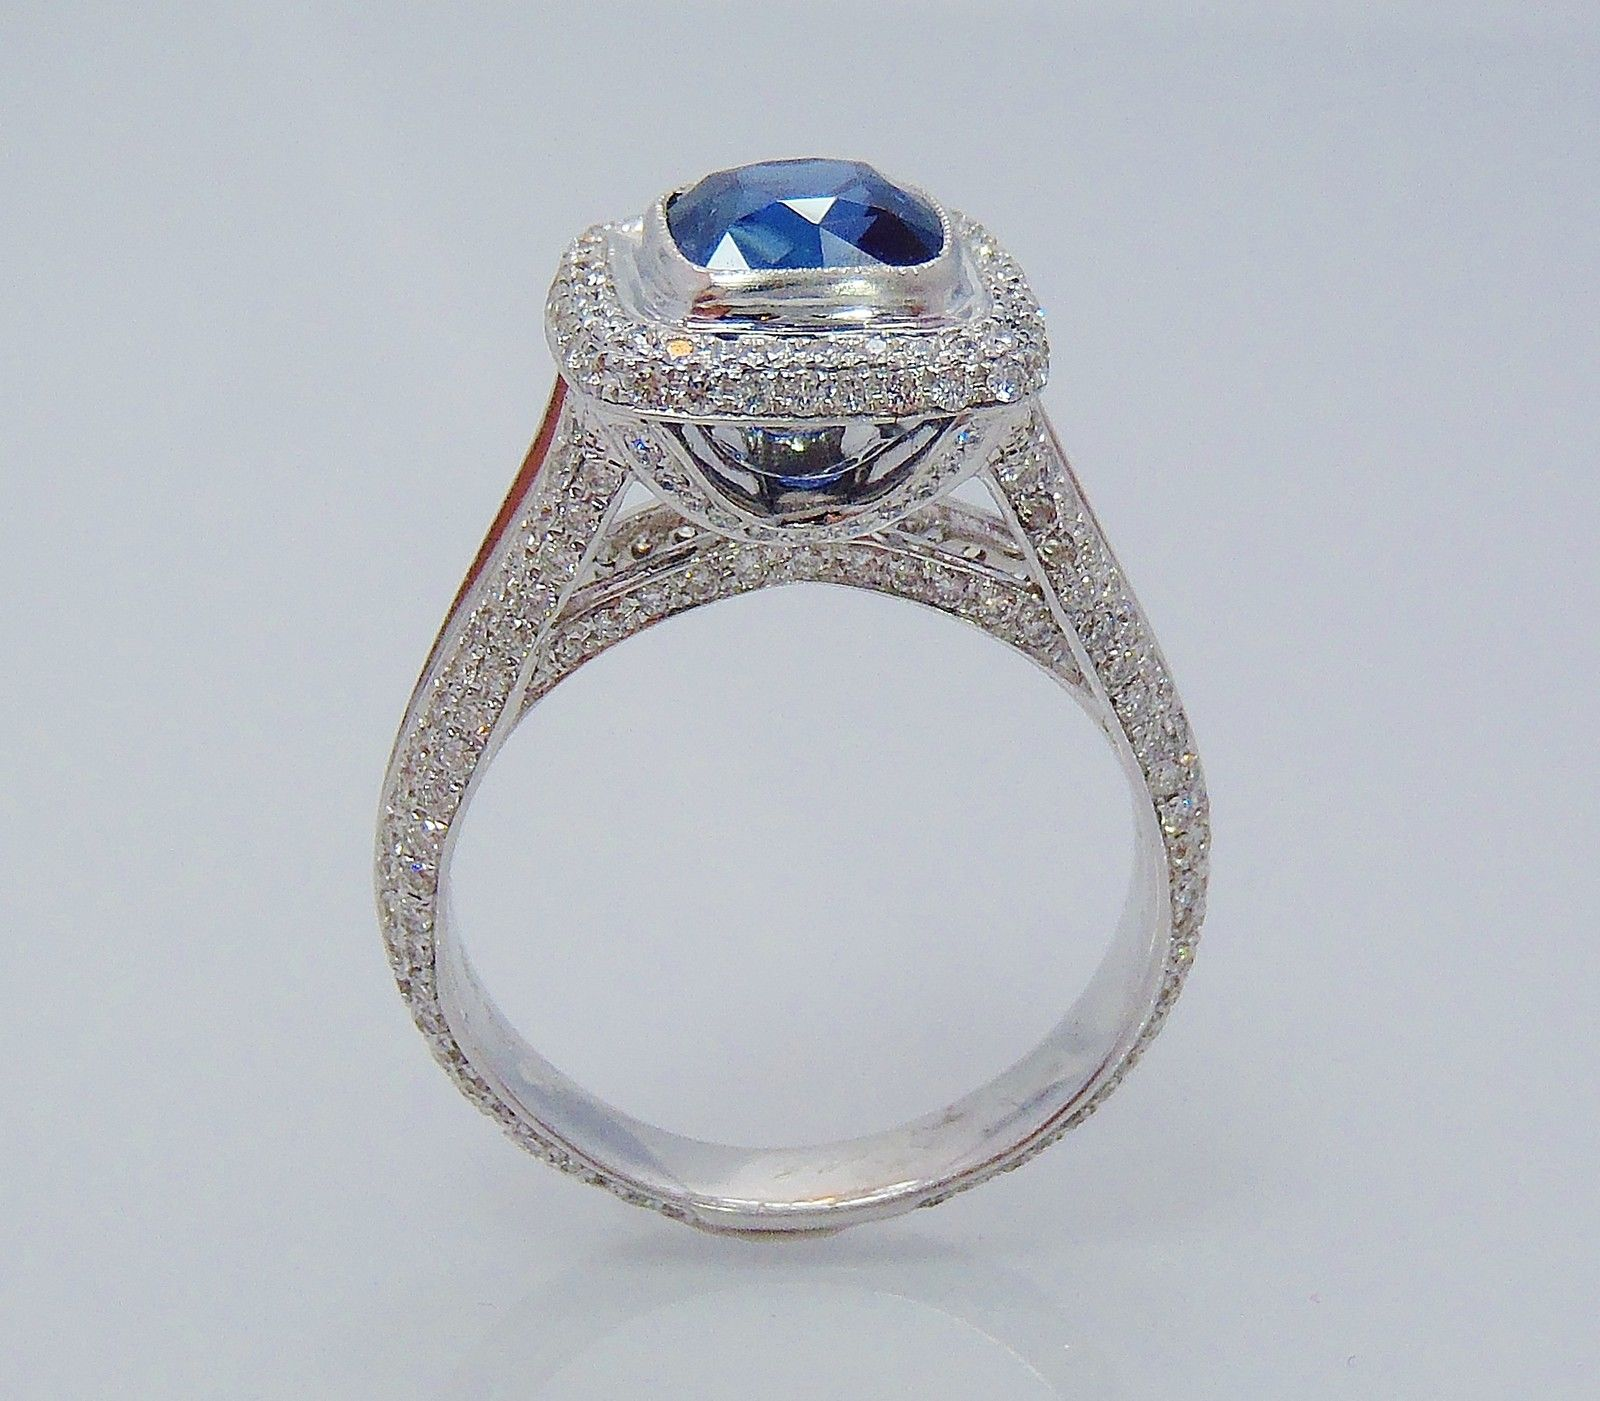 Diamond Cocktail Ring 1 75Ct Blue Sapphire 3 80Ct White Gold